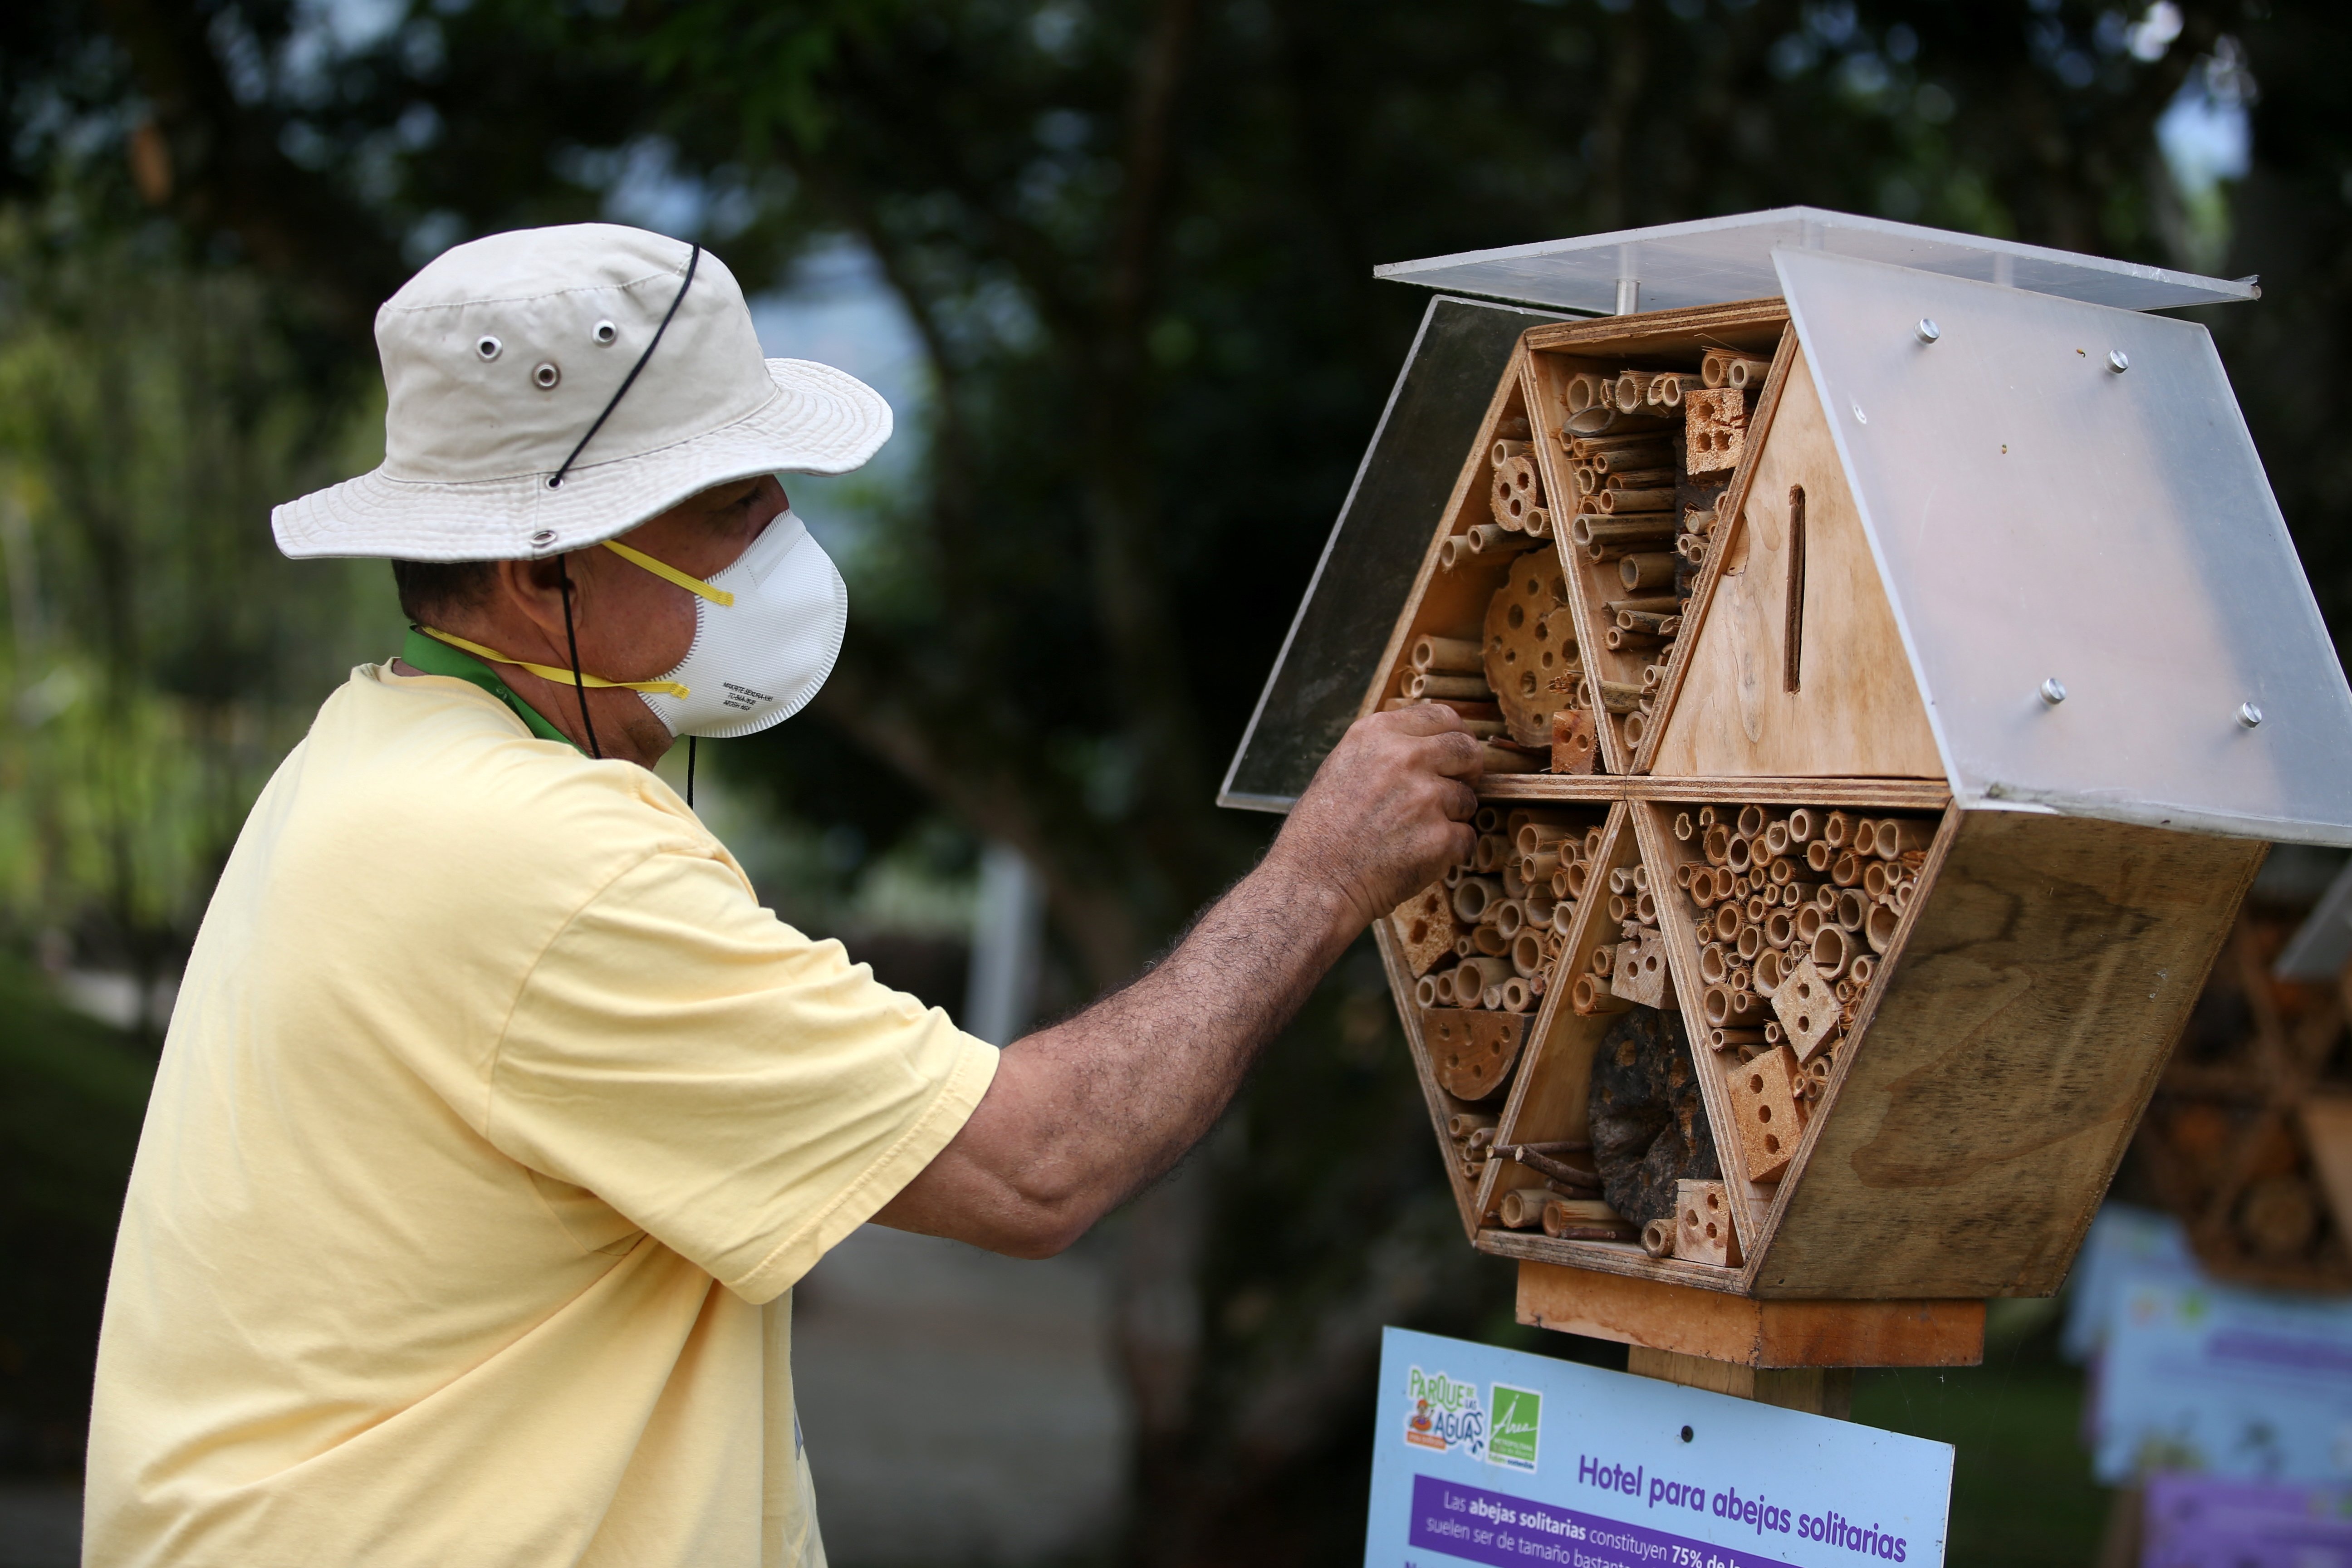 Hector Ivan Valencia, an assistant for the local authority's risk management unit, cleans the structure of a wooden hotel for solitary bees made by the Metropolitan Area of the Aburra Valley (AMVA) in Barbosa, Colombia April 21, 2021. REUTERS/Luisa Gonzalez